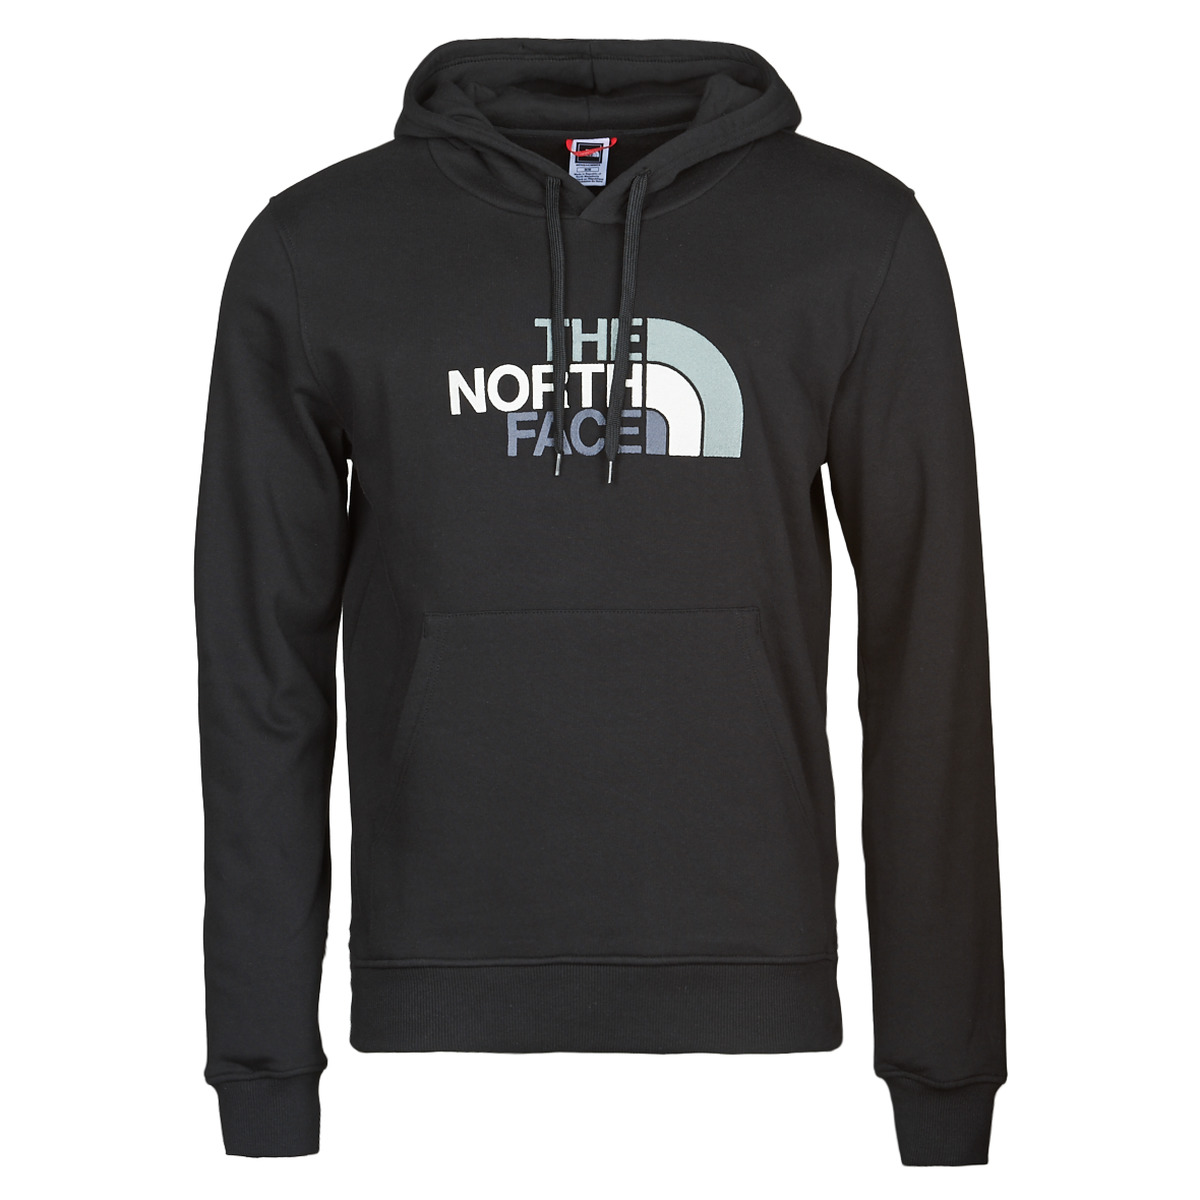 The North Face DREW PEAK PULLOVER HOODIE Noir